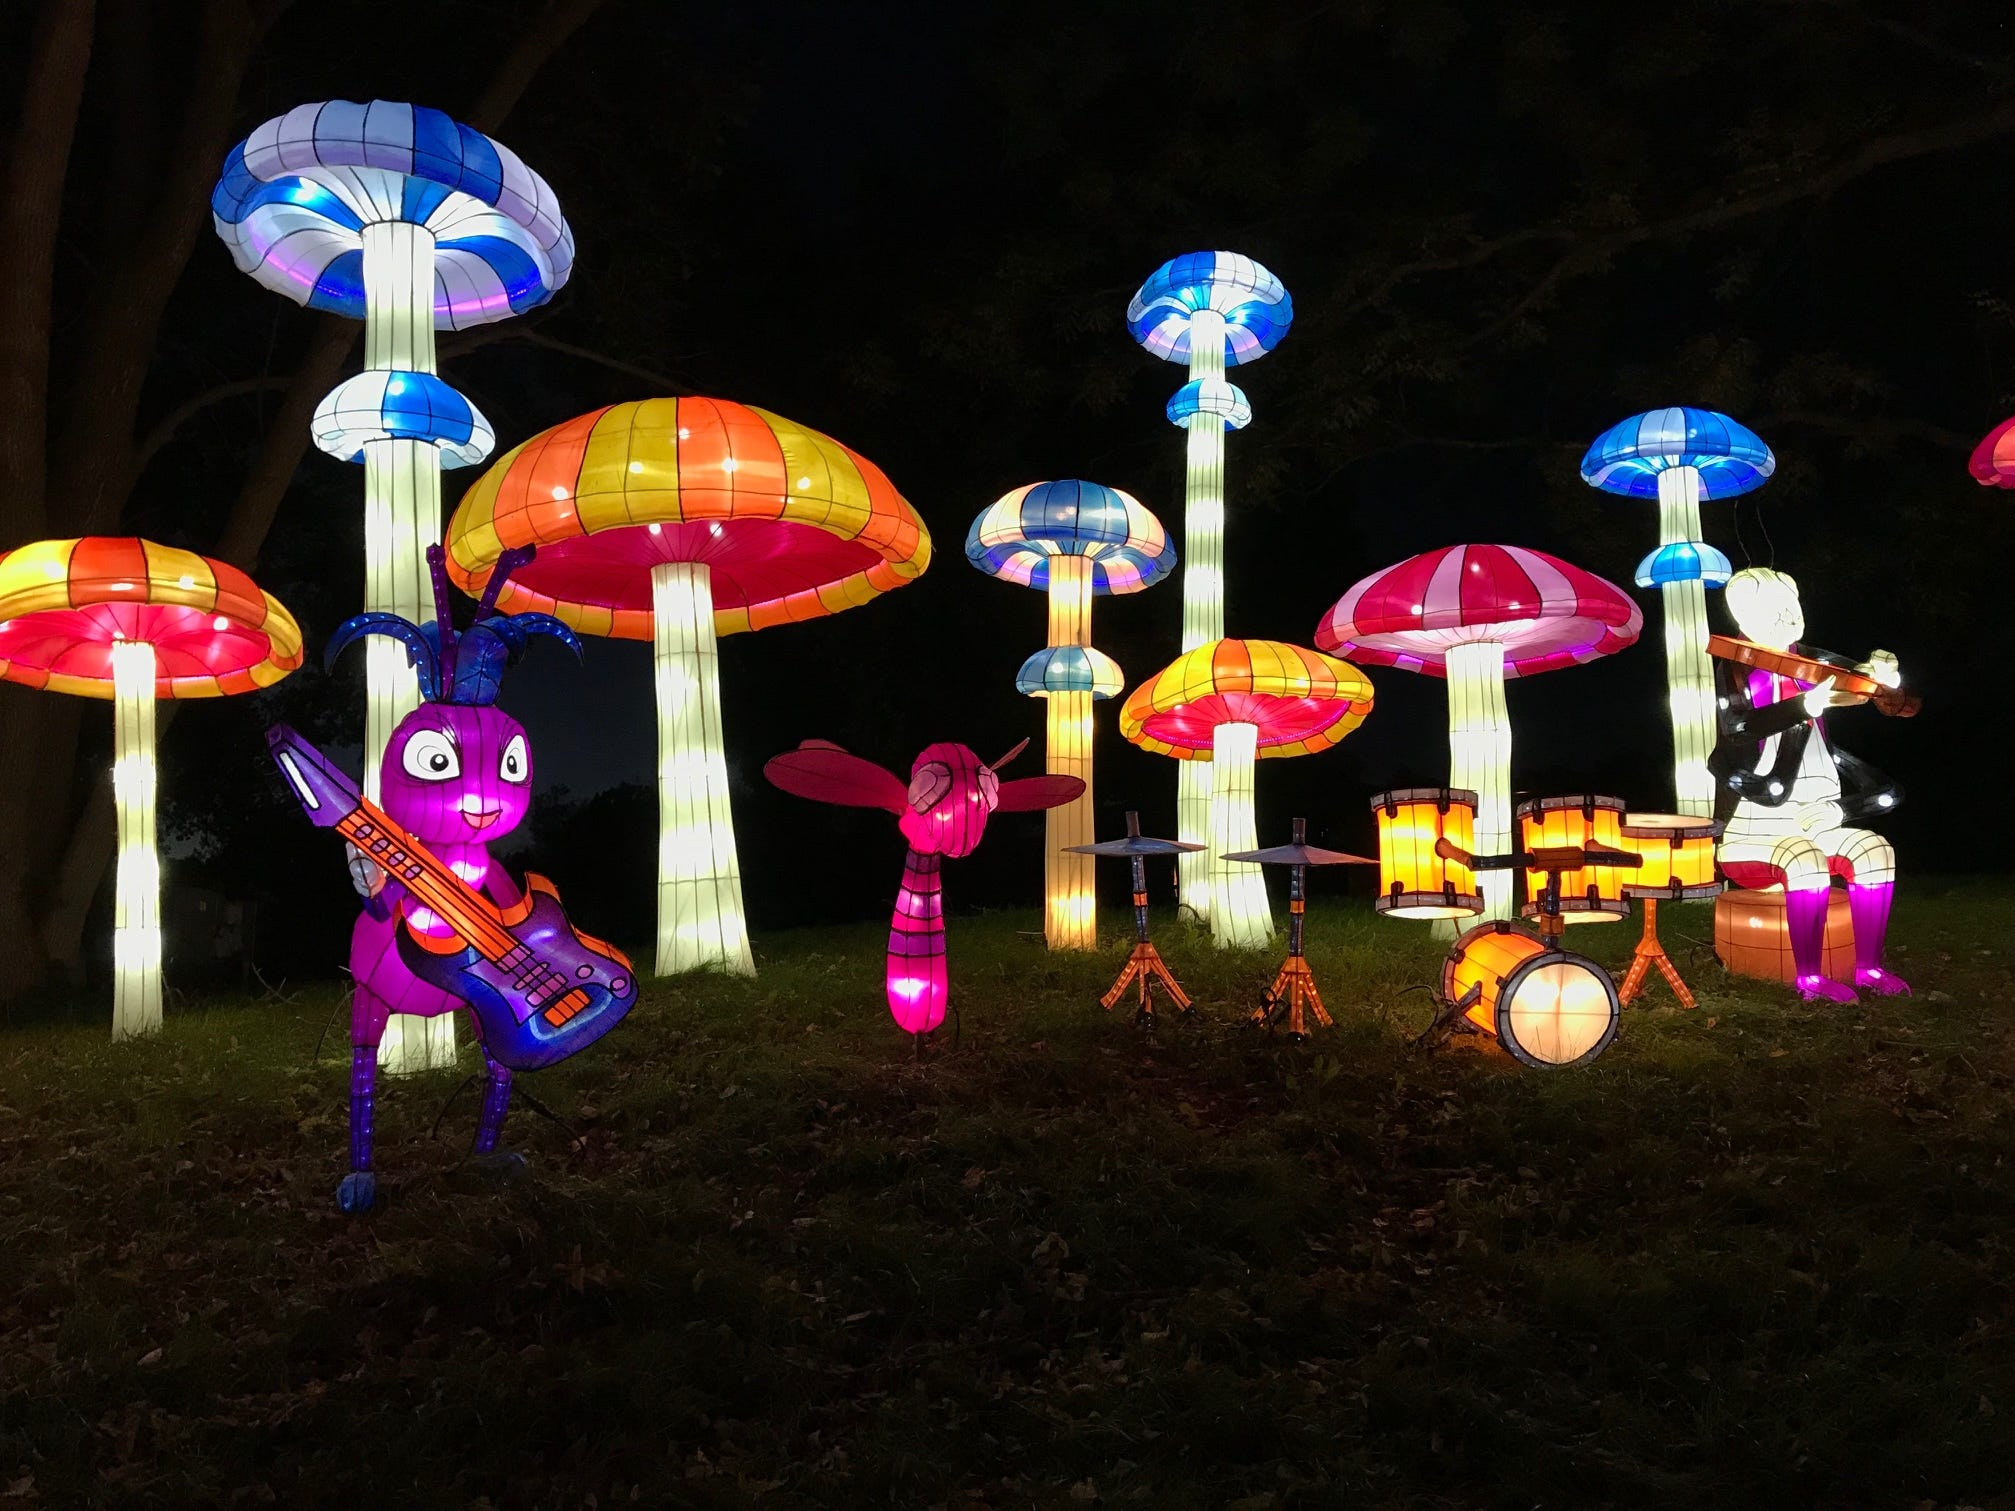 Insect Land is a fun display at the China Lights lantern festival in 2018. There are 45 displays for guests to enjoy.